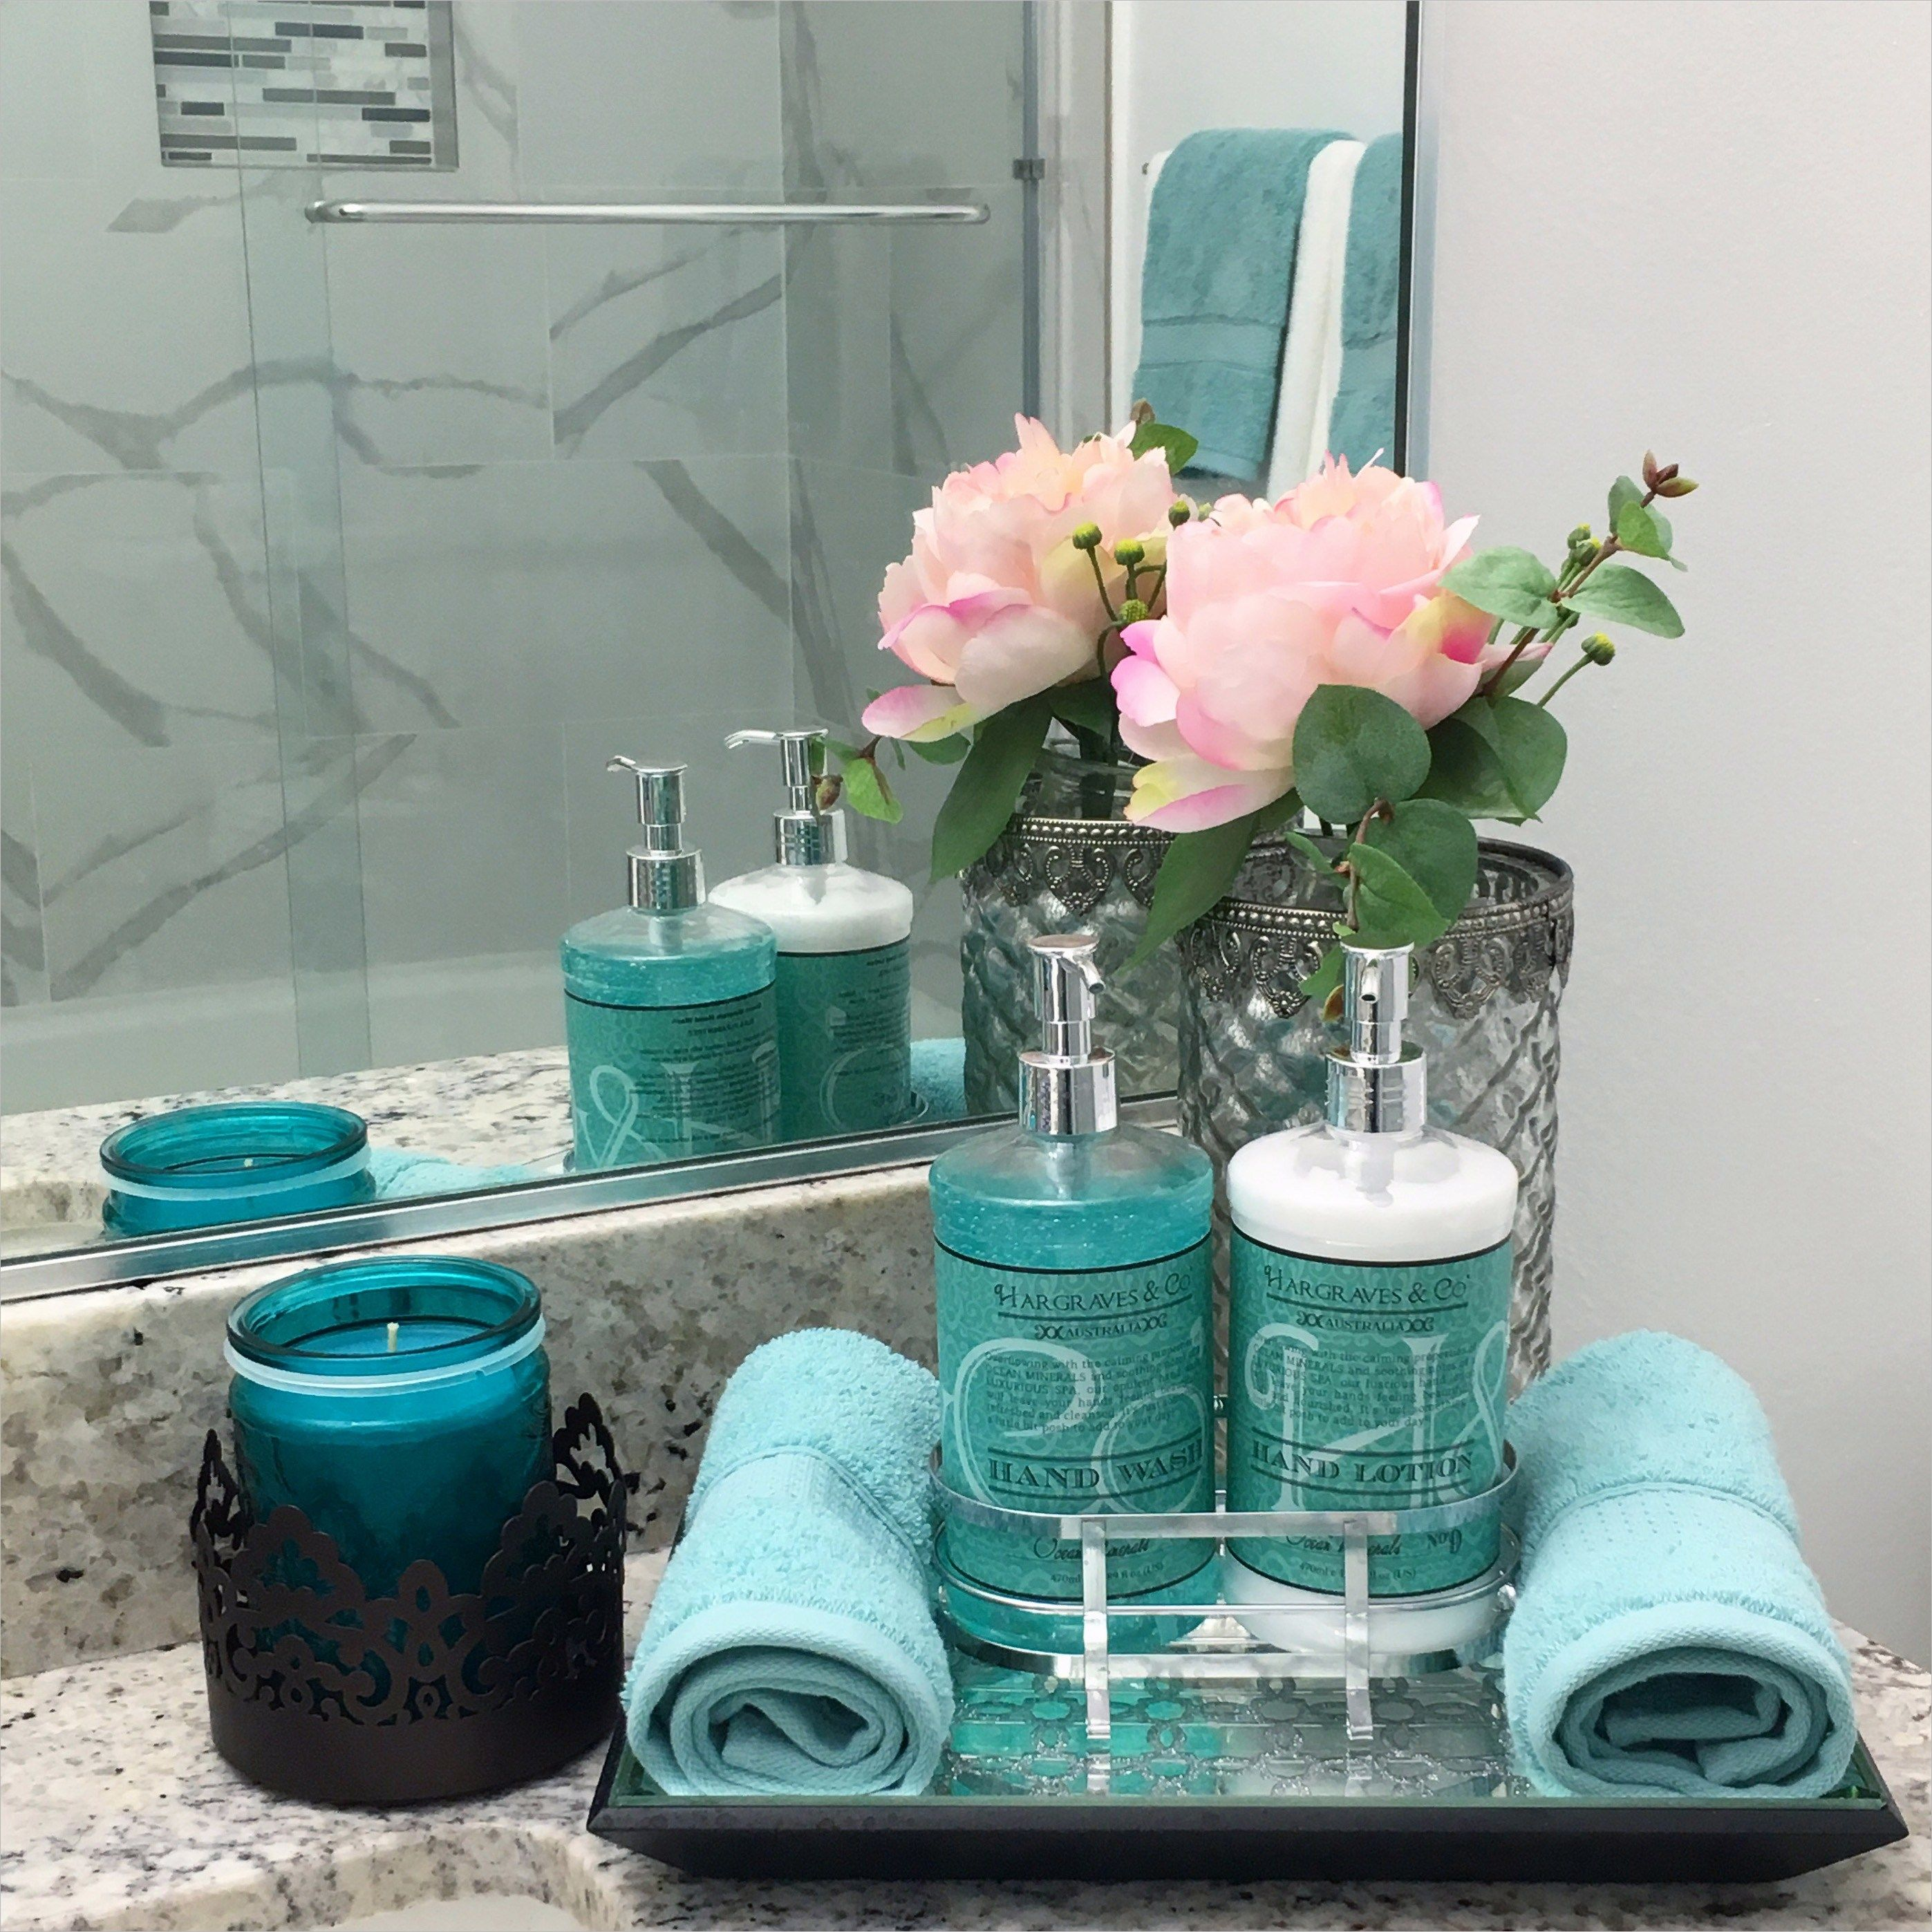 43 Perfect And Cheap Bathroom Accessories Decorating Ideas 23 Bathroom Decor Ideas Myeye4di Mermaid Bathroom Decor Teal Bathroom Decor Bathroom Decor Apartment